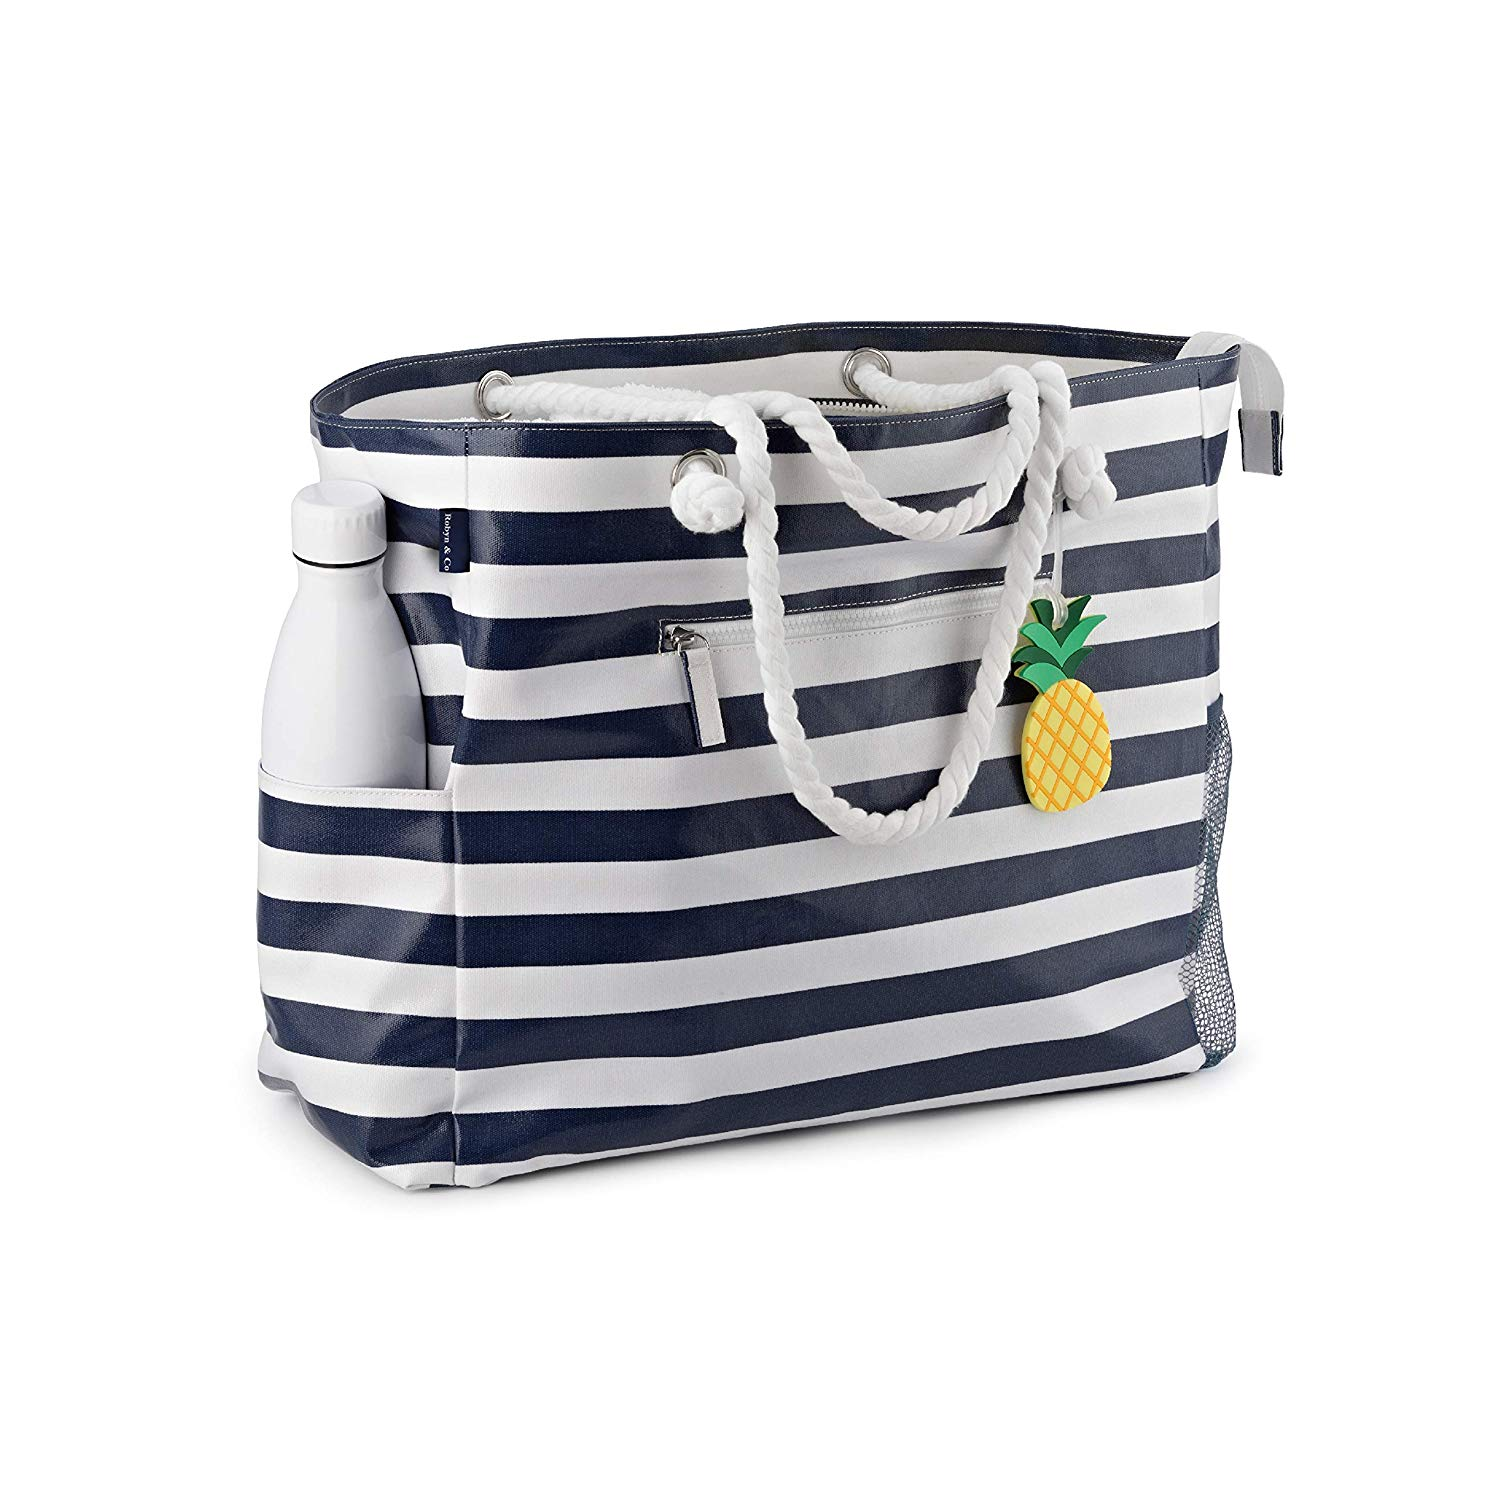 Large-Beach-Bag-Waterproof-Canvas-Beach-Tote-with-Top-Zipper-6-pockets-Navy-Blue-by-Robyn-Co